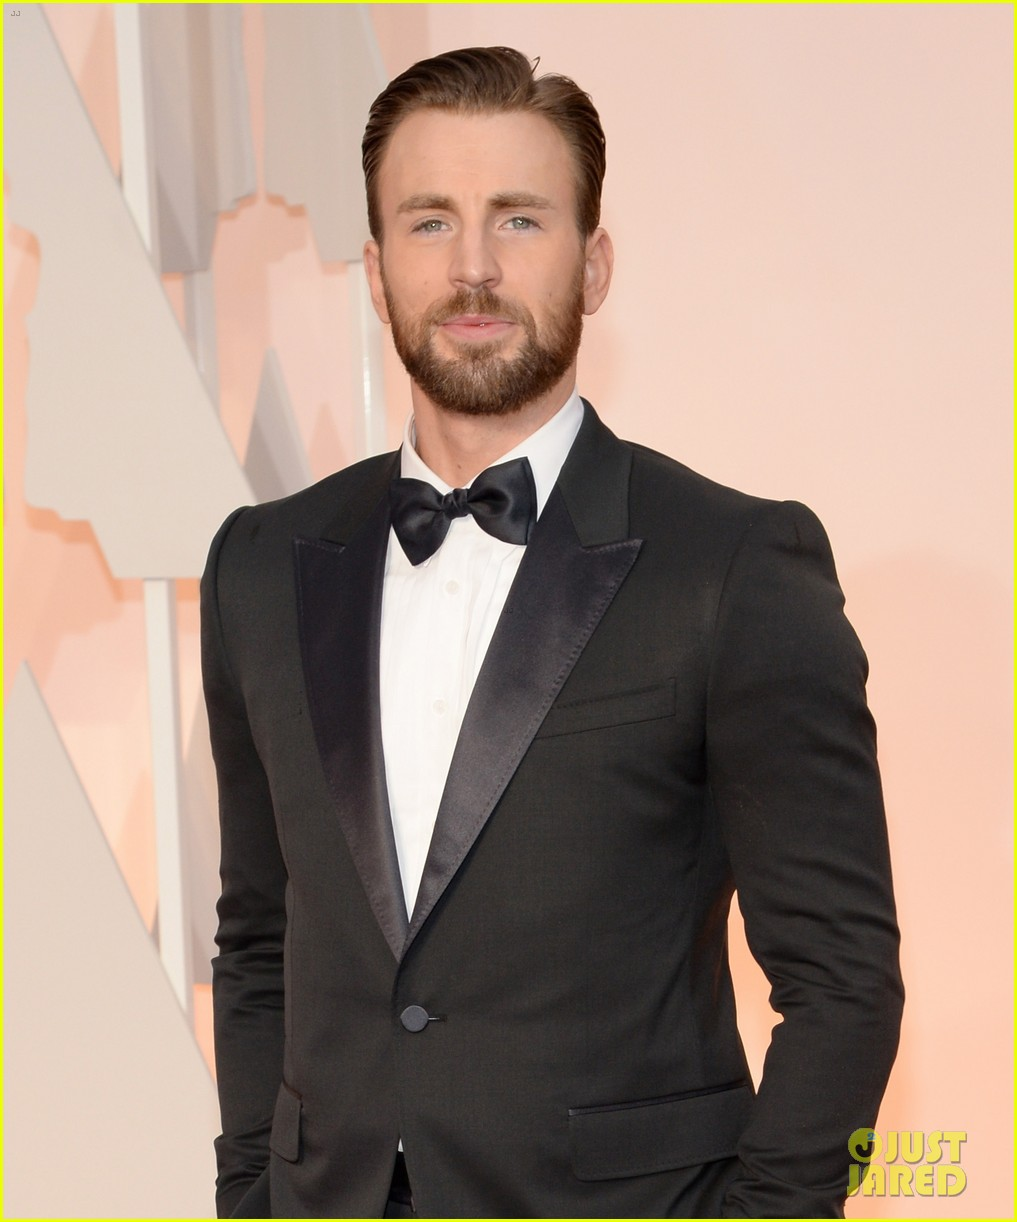 Chris Evans Suits Up (Not as Captain America) for Oscars 2015: Photo ...